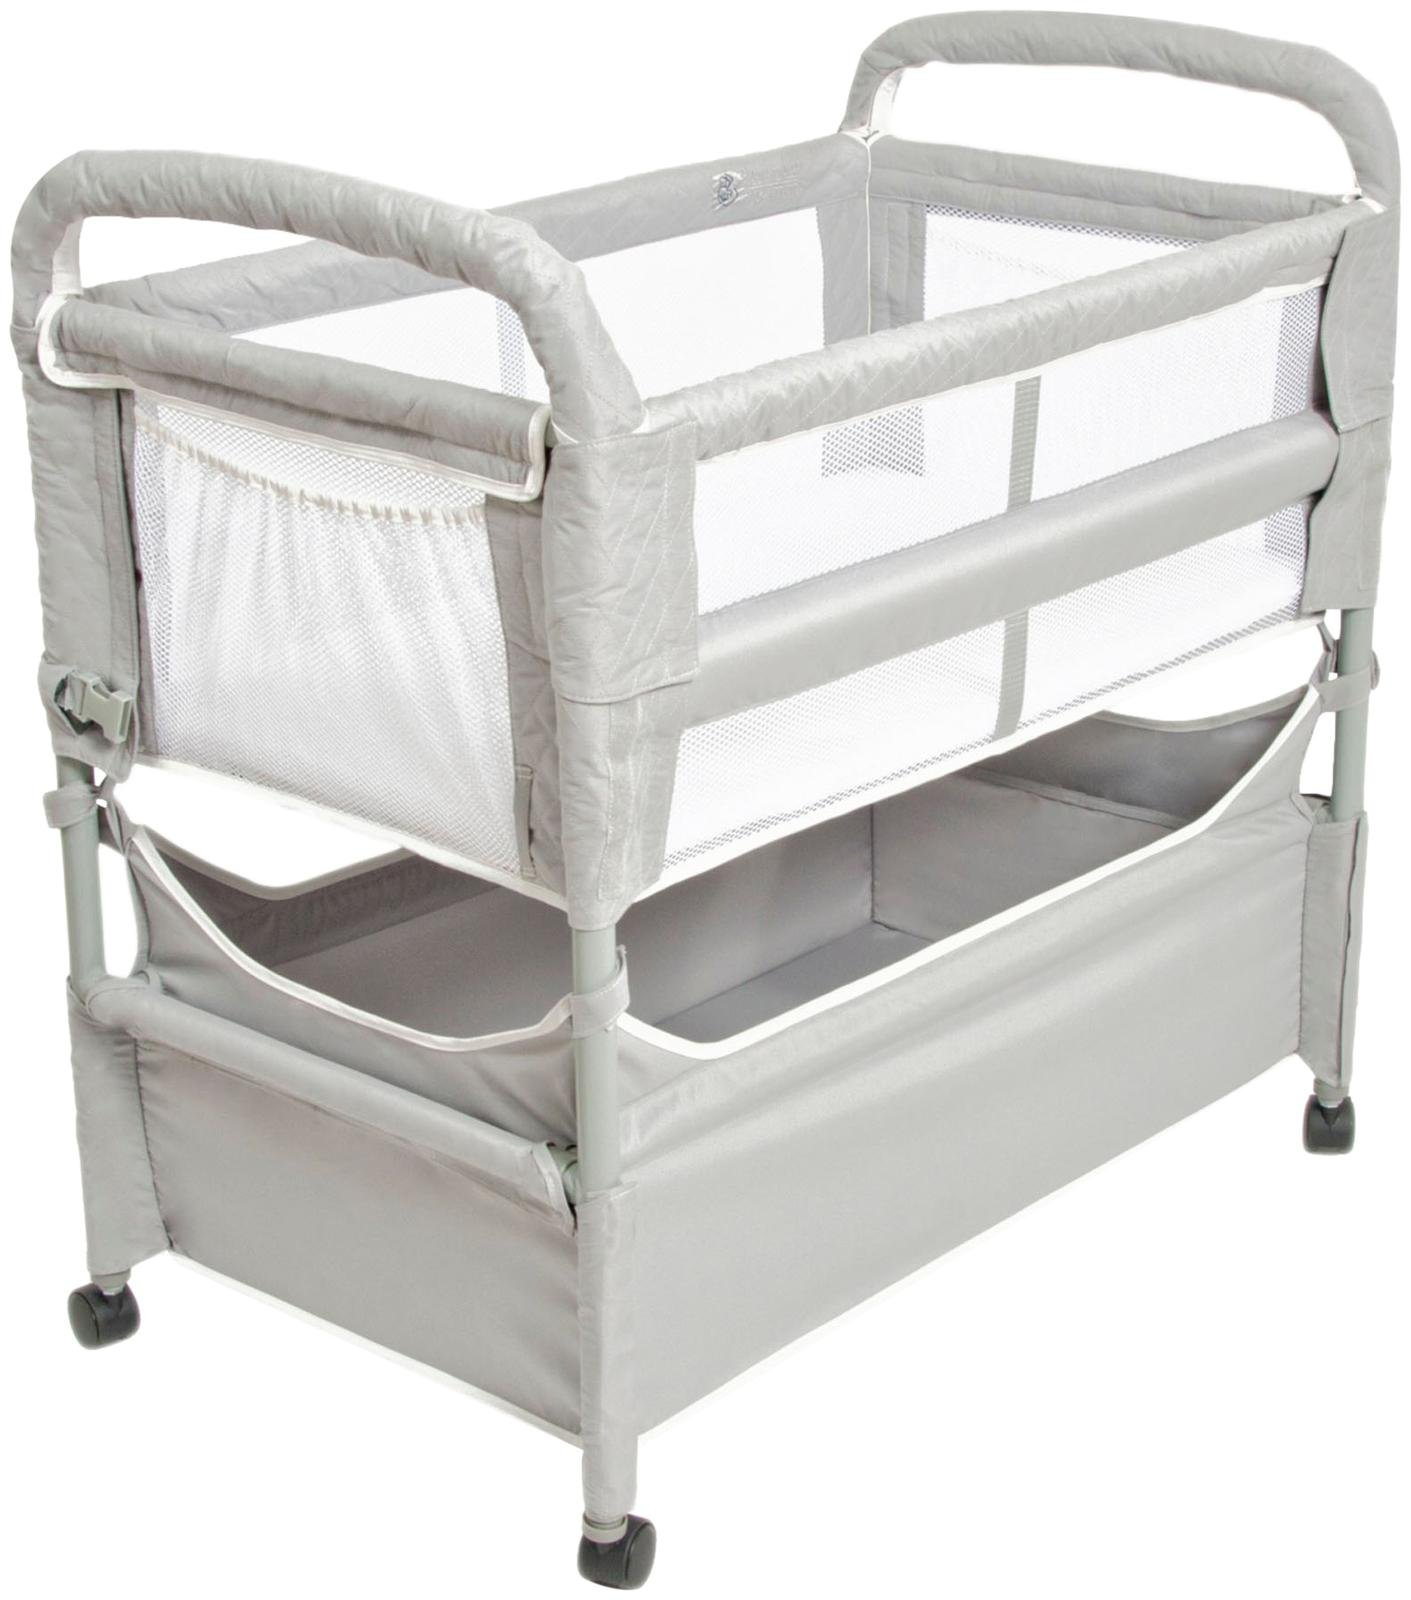 Arms Reach Concepts Inc. Clear-Vue Co-Sleeper, Grey, One Size, 3 Pieces by Arm's Reach